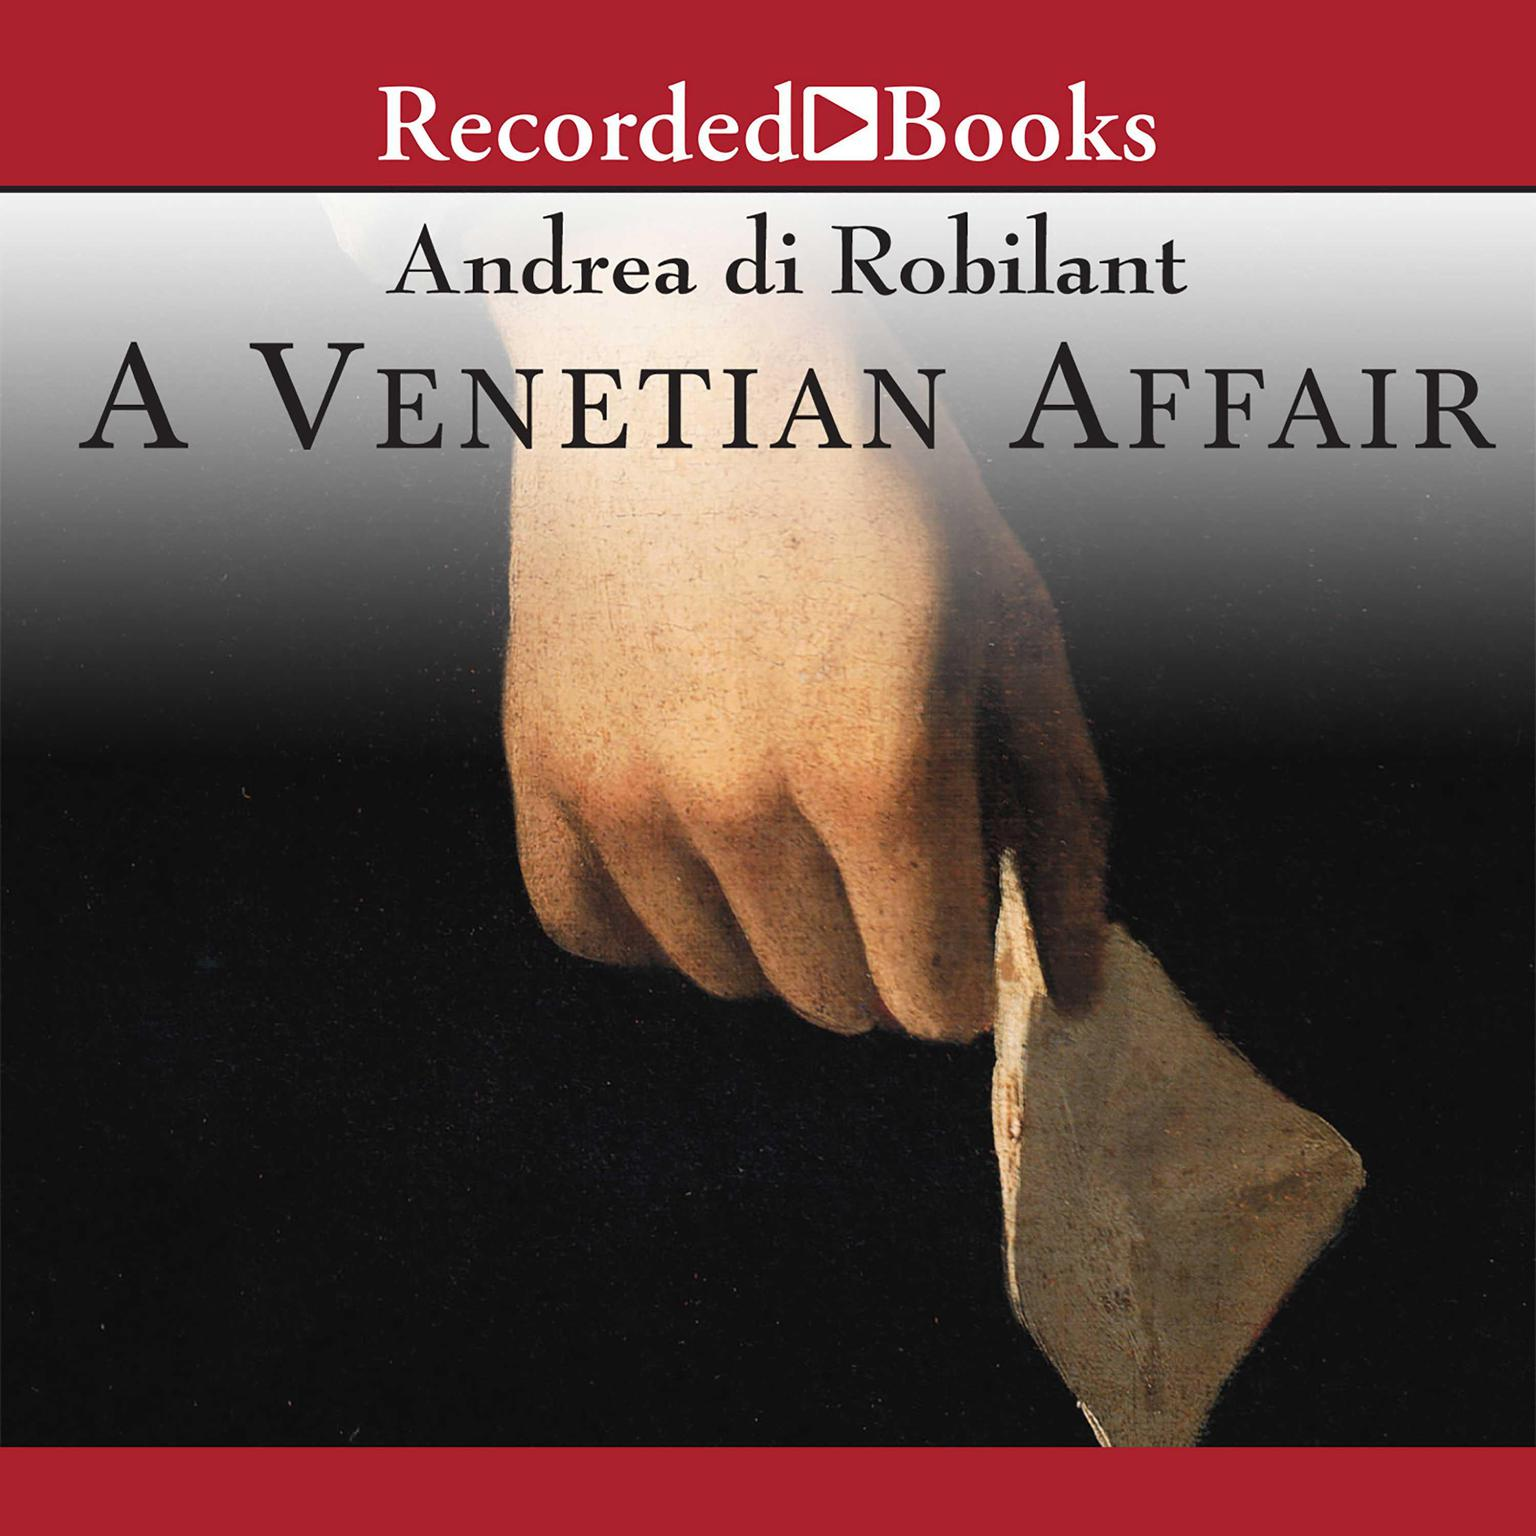 Printable A Venetian Affair: A True Tale of Forbidden Love in the 18th Century Audiobook Cover Art